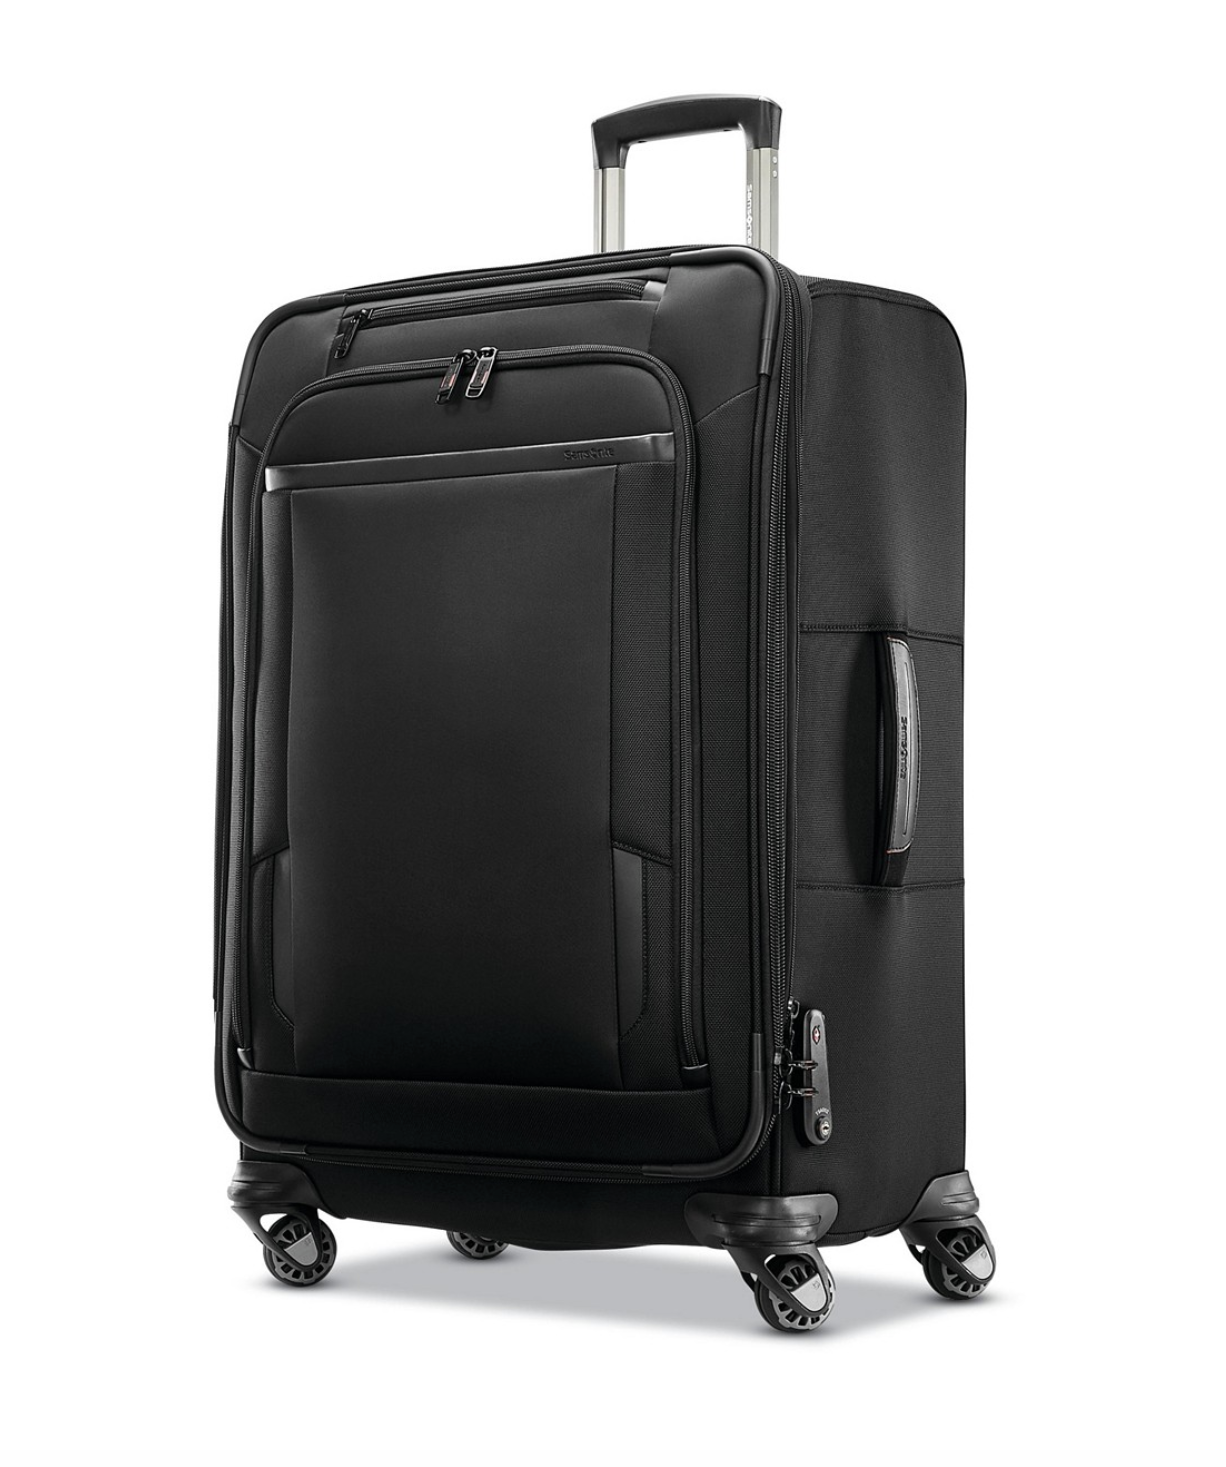 Samsonite Pro Travel 25-inch expandable spinner